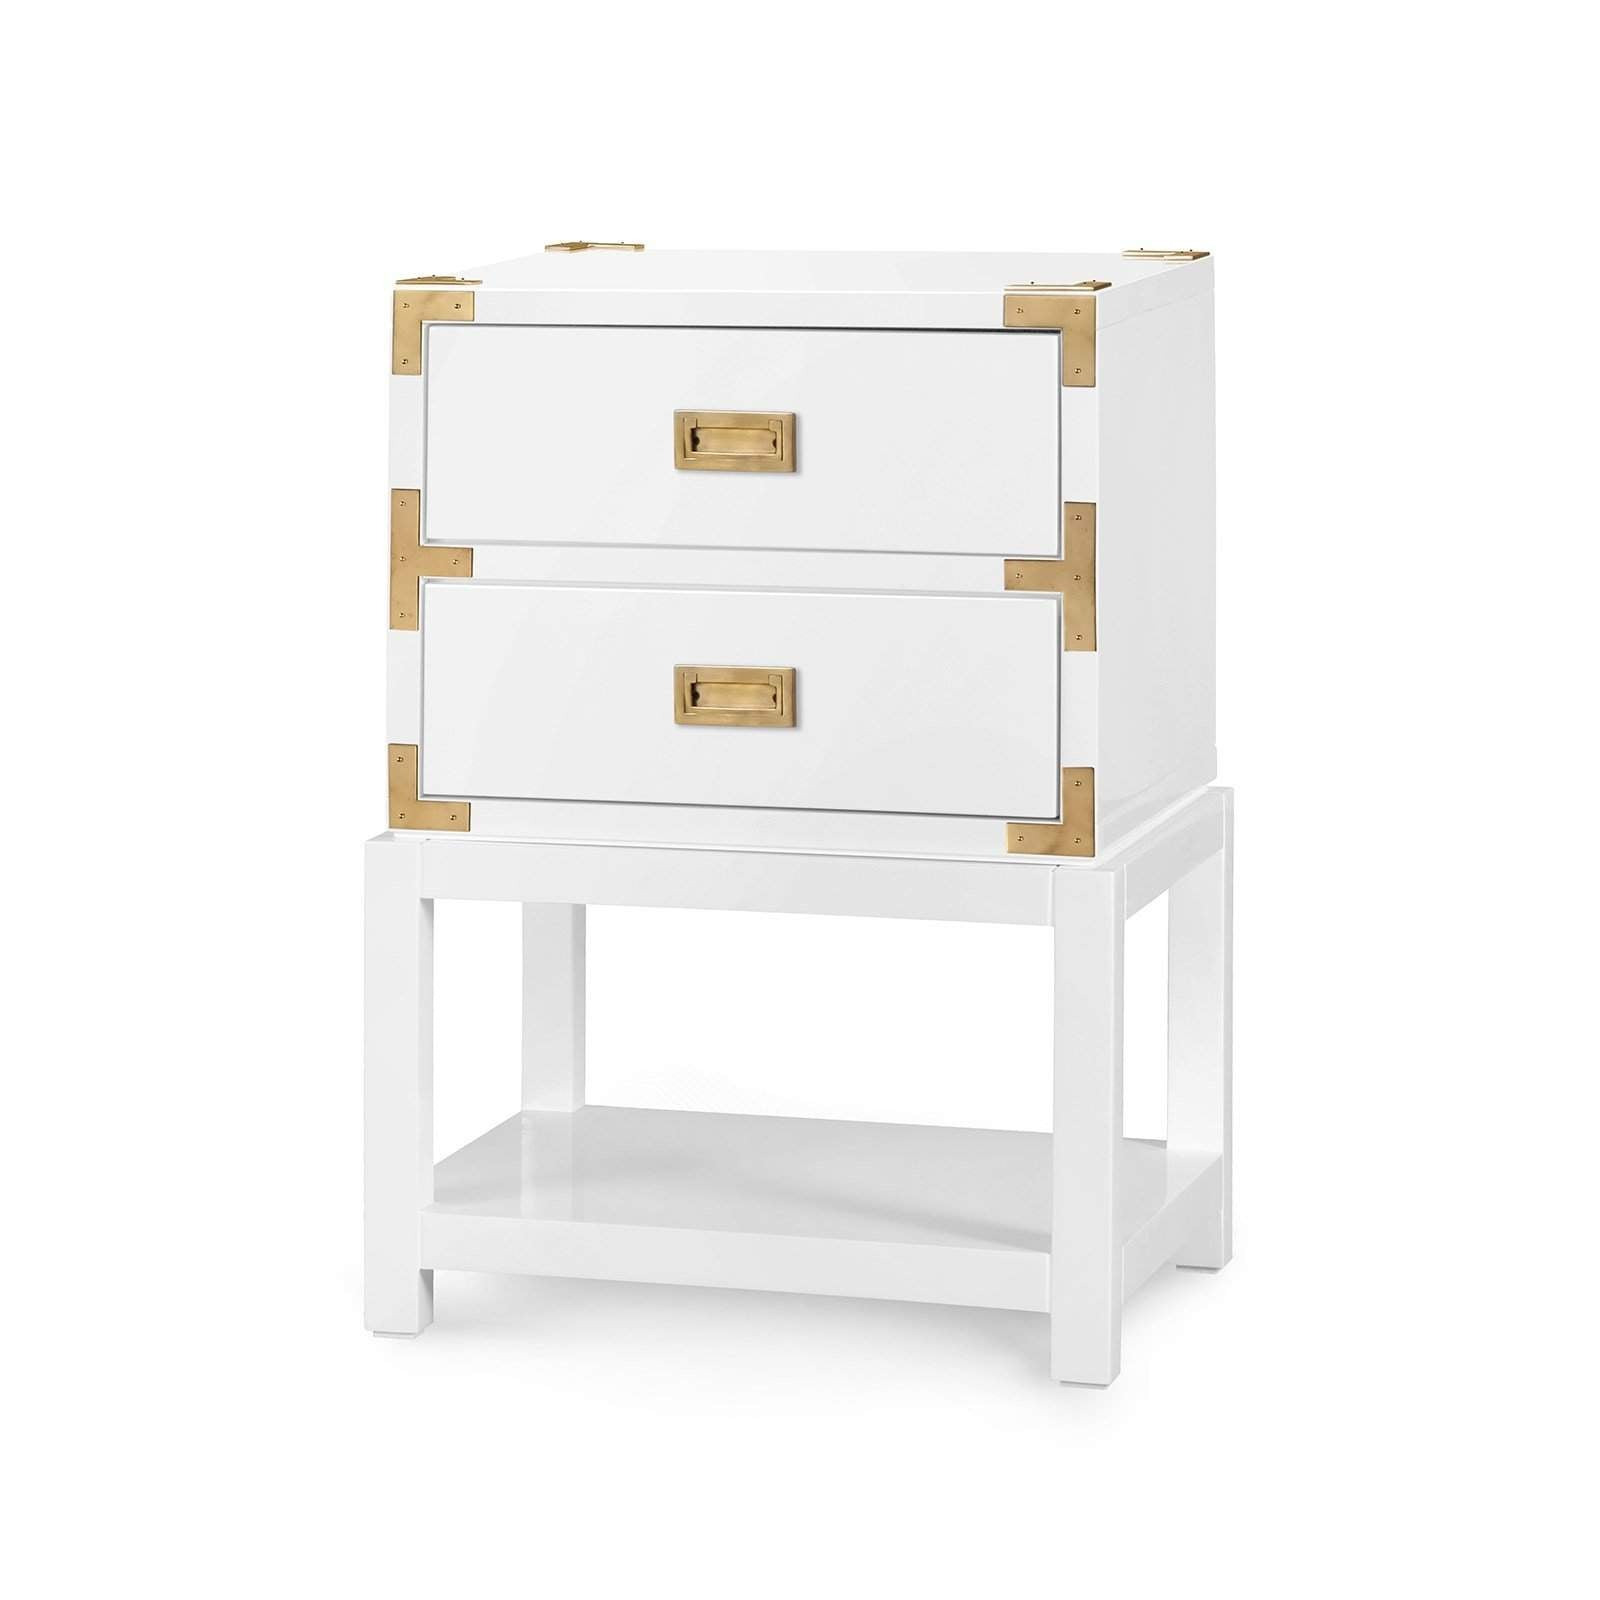 Bungalow 5 - TANSU 2-DRAWER SIDE TABLE. in WHITE